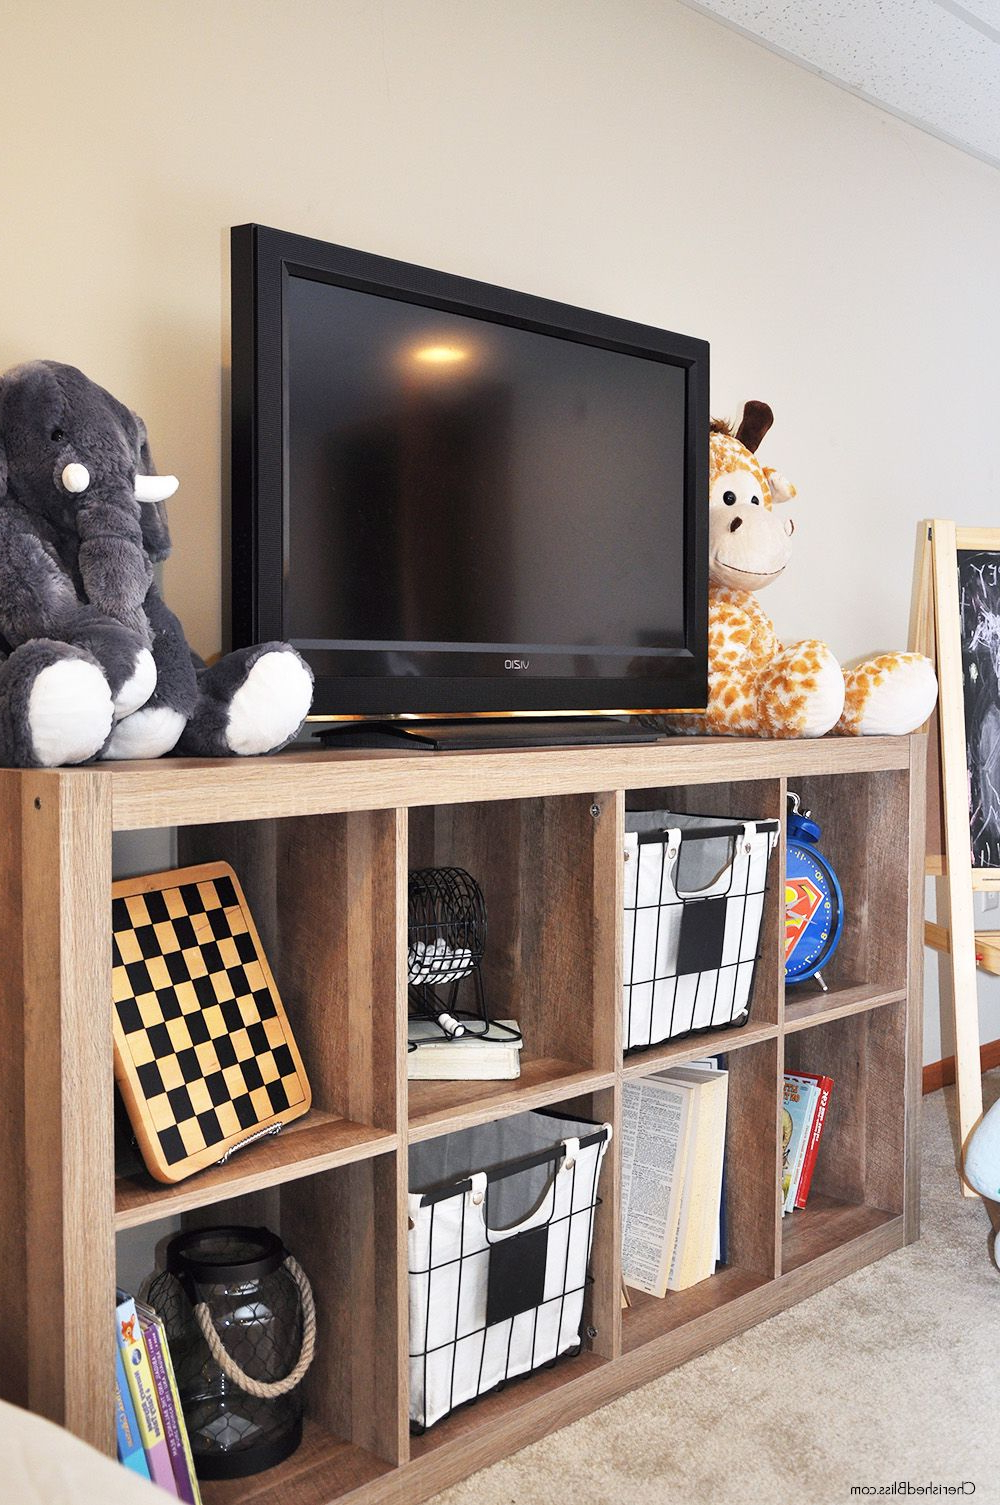 Playroom Progress | Bloggers' Best Diy Ideas | Pinterest | Playroom Throughout Kenzie 72 Inch Open Display Tv Stands (View 18 of 20)